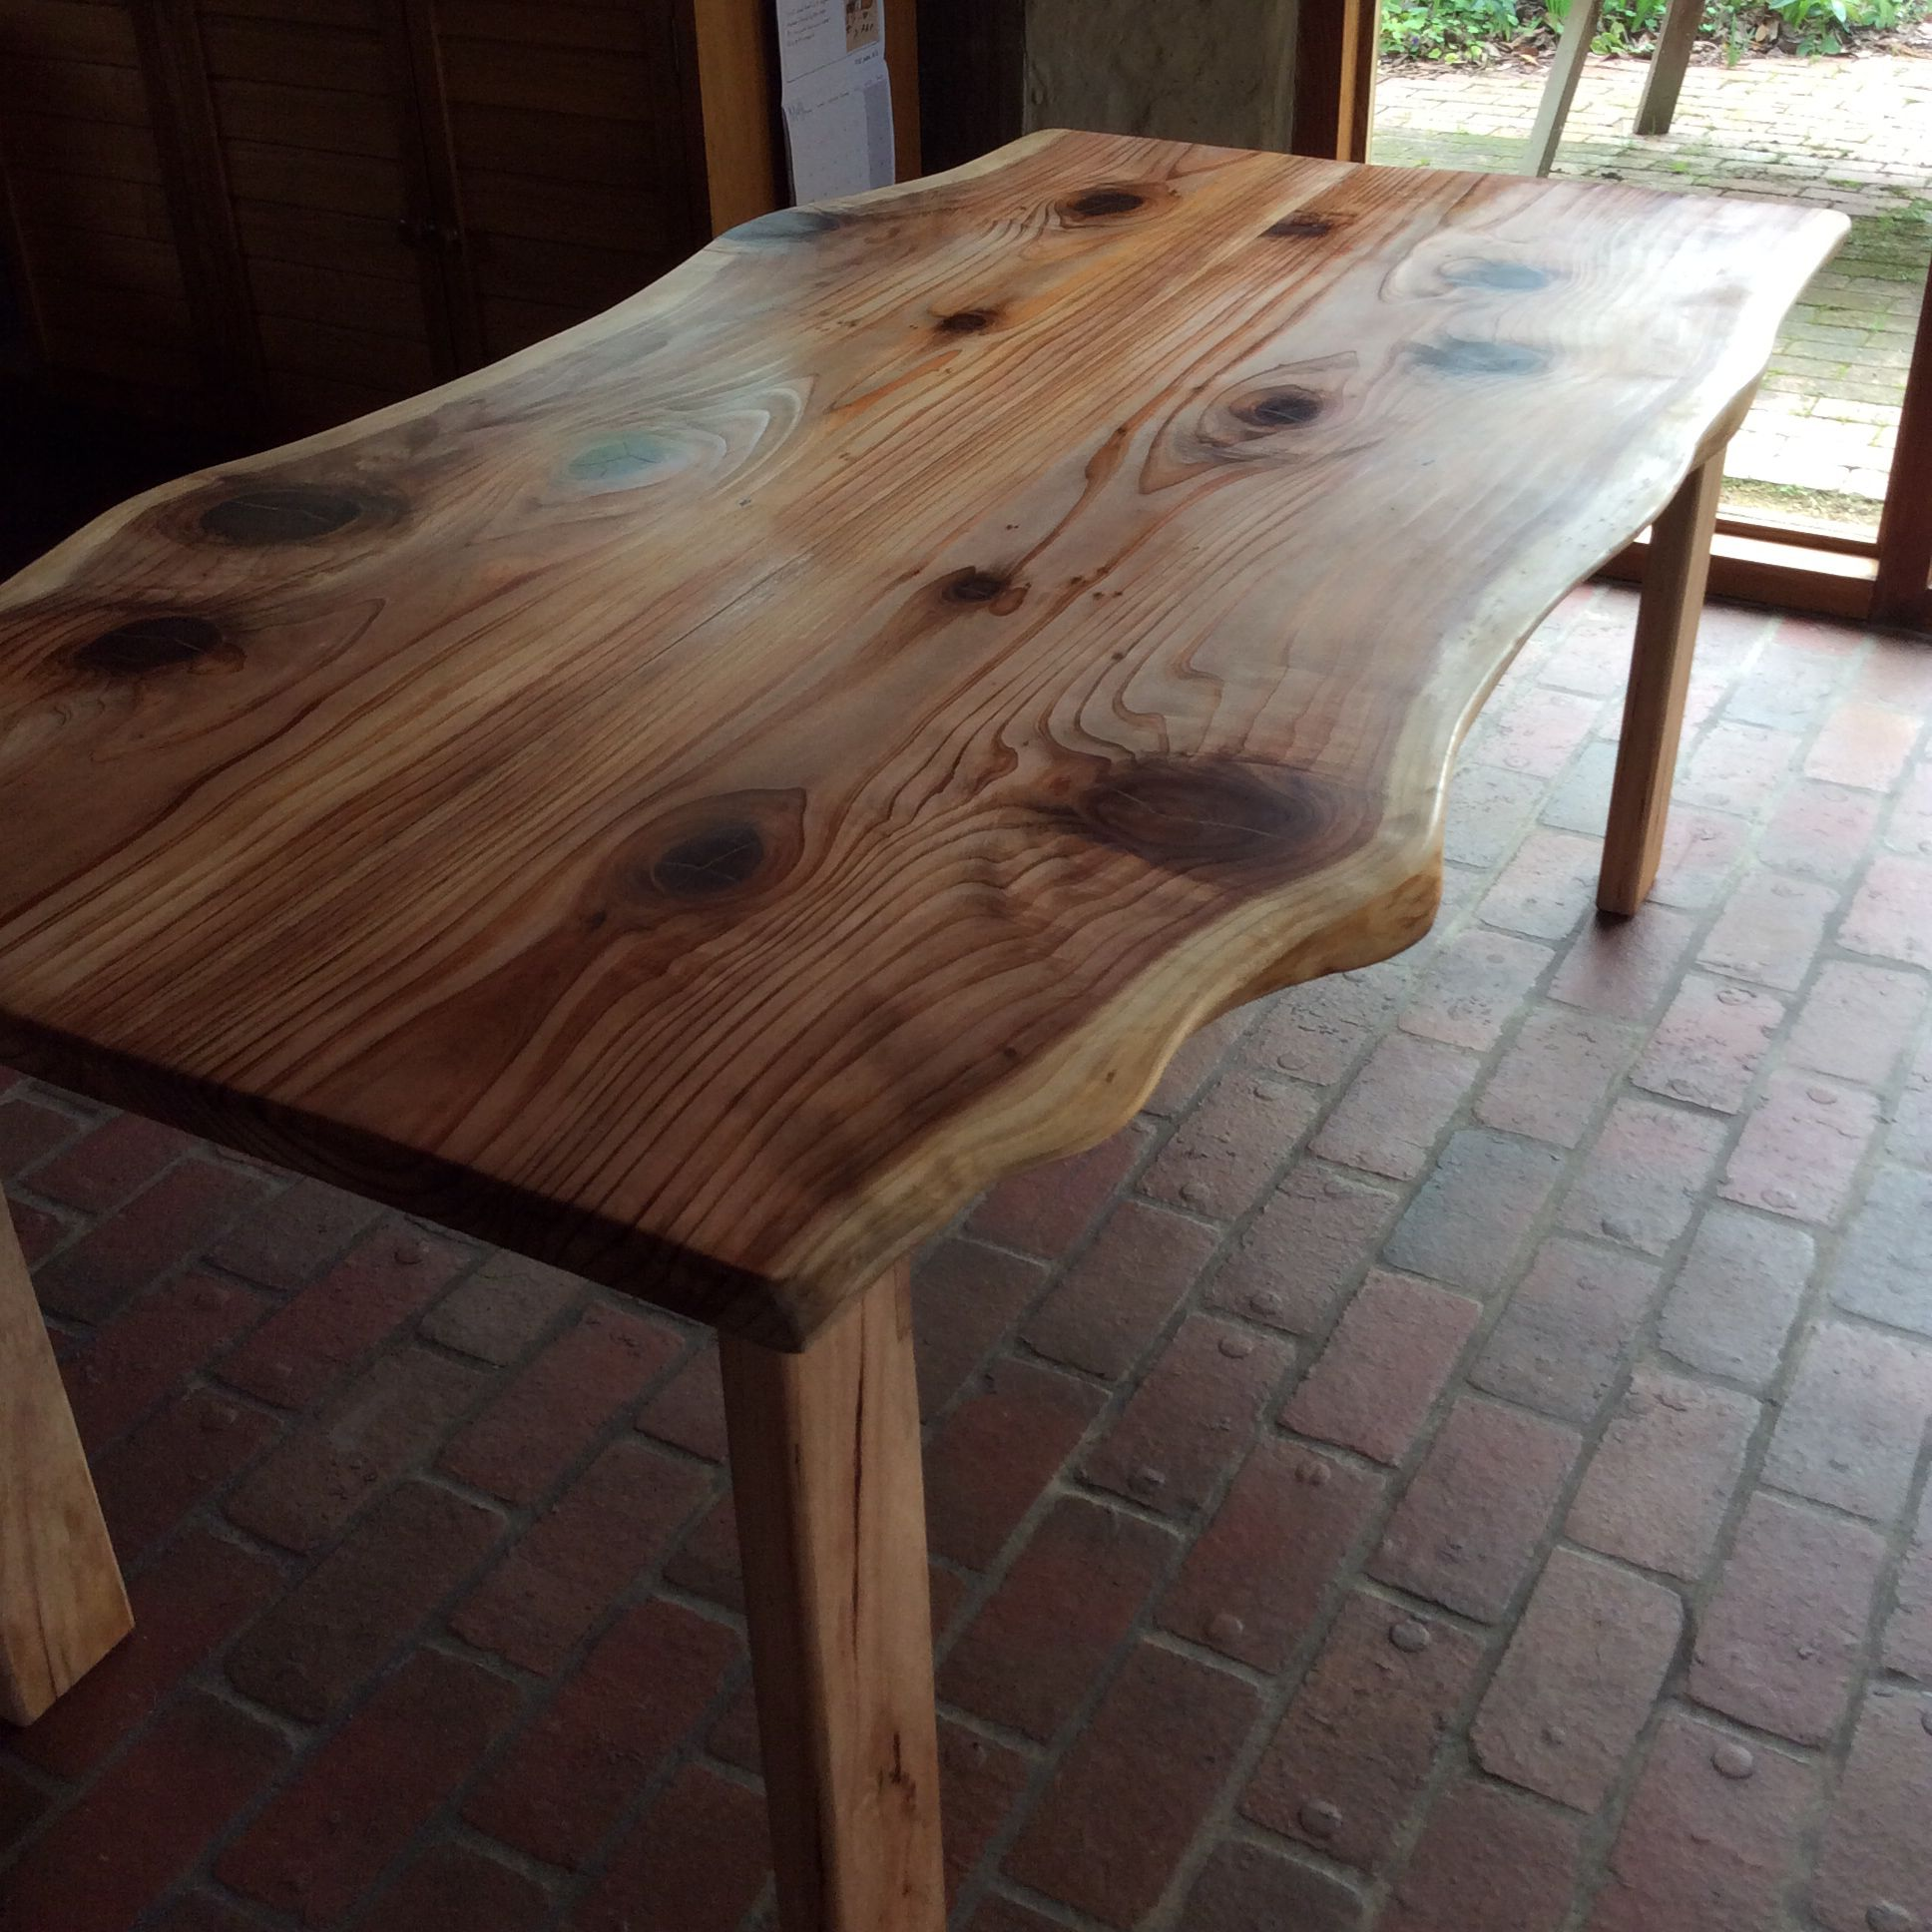 Japanese Cedar dining table. Designed and made by Graeme Henchel, May, 2014.